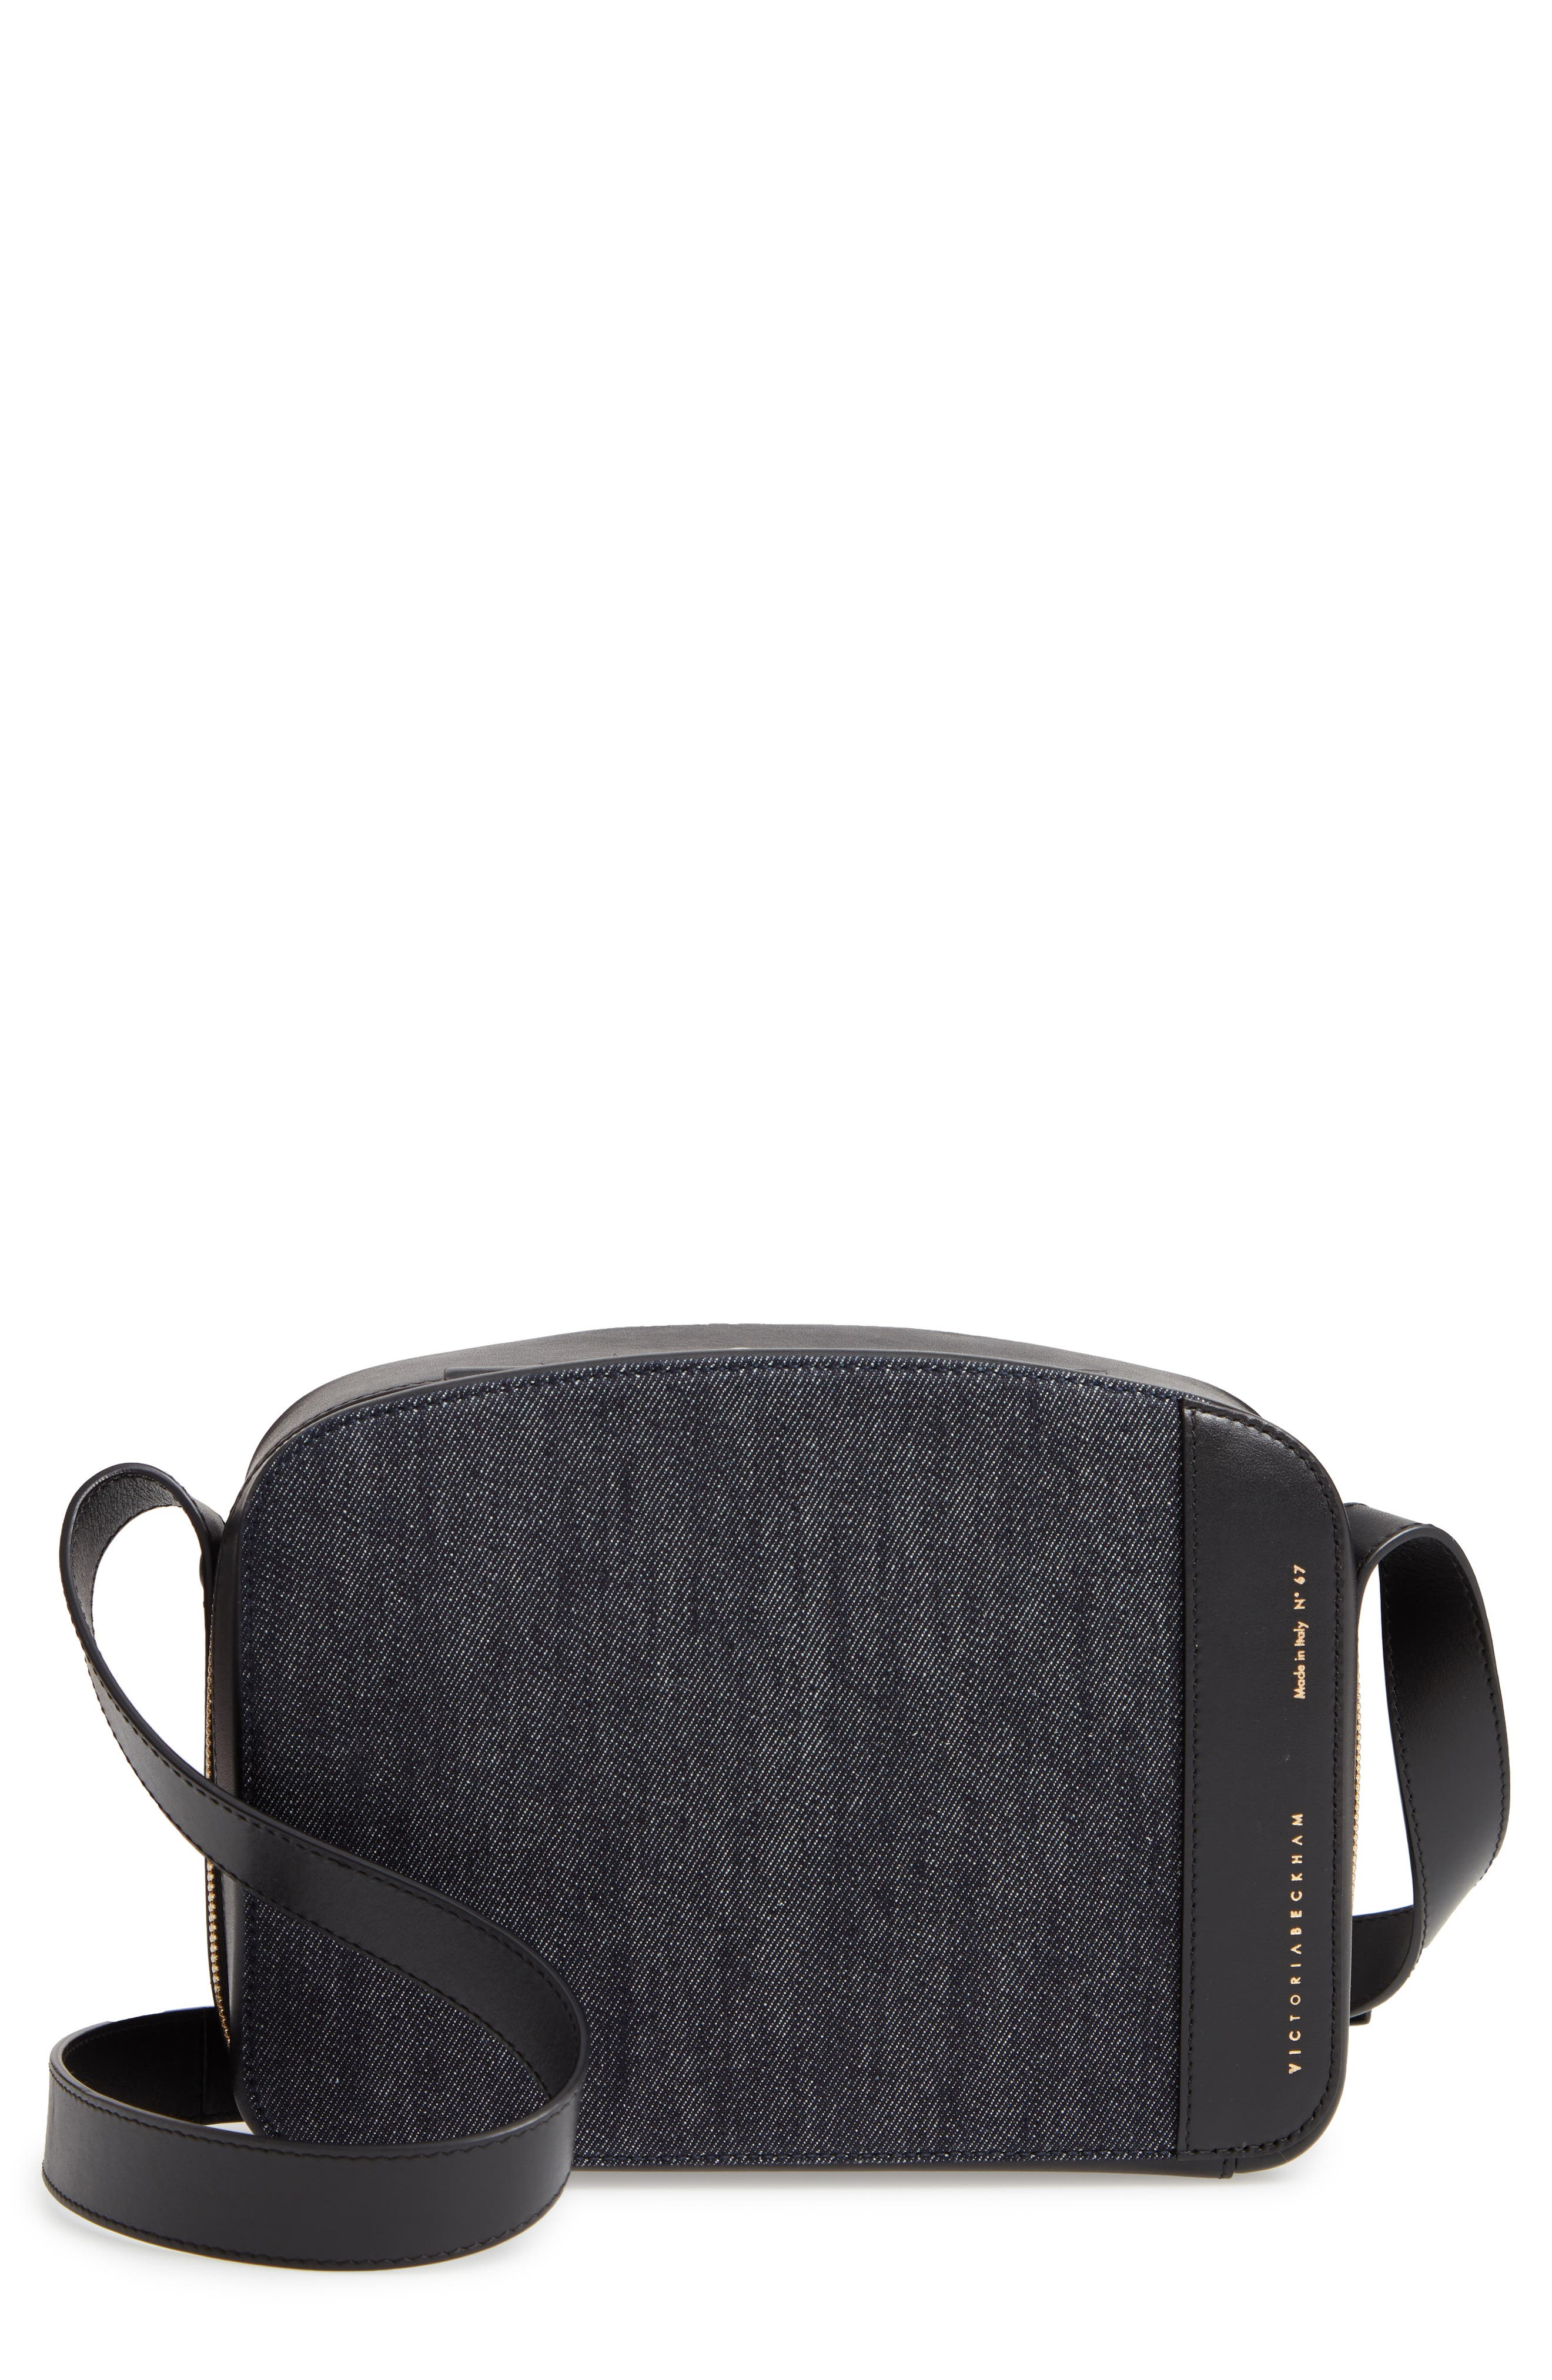 VICTORIA BECKHAM, Vanity Denim & Leather Camera Bag, Main thumbnail 1, color, INDIGO/ BLACK